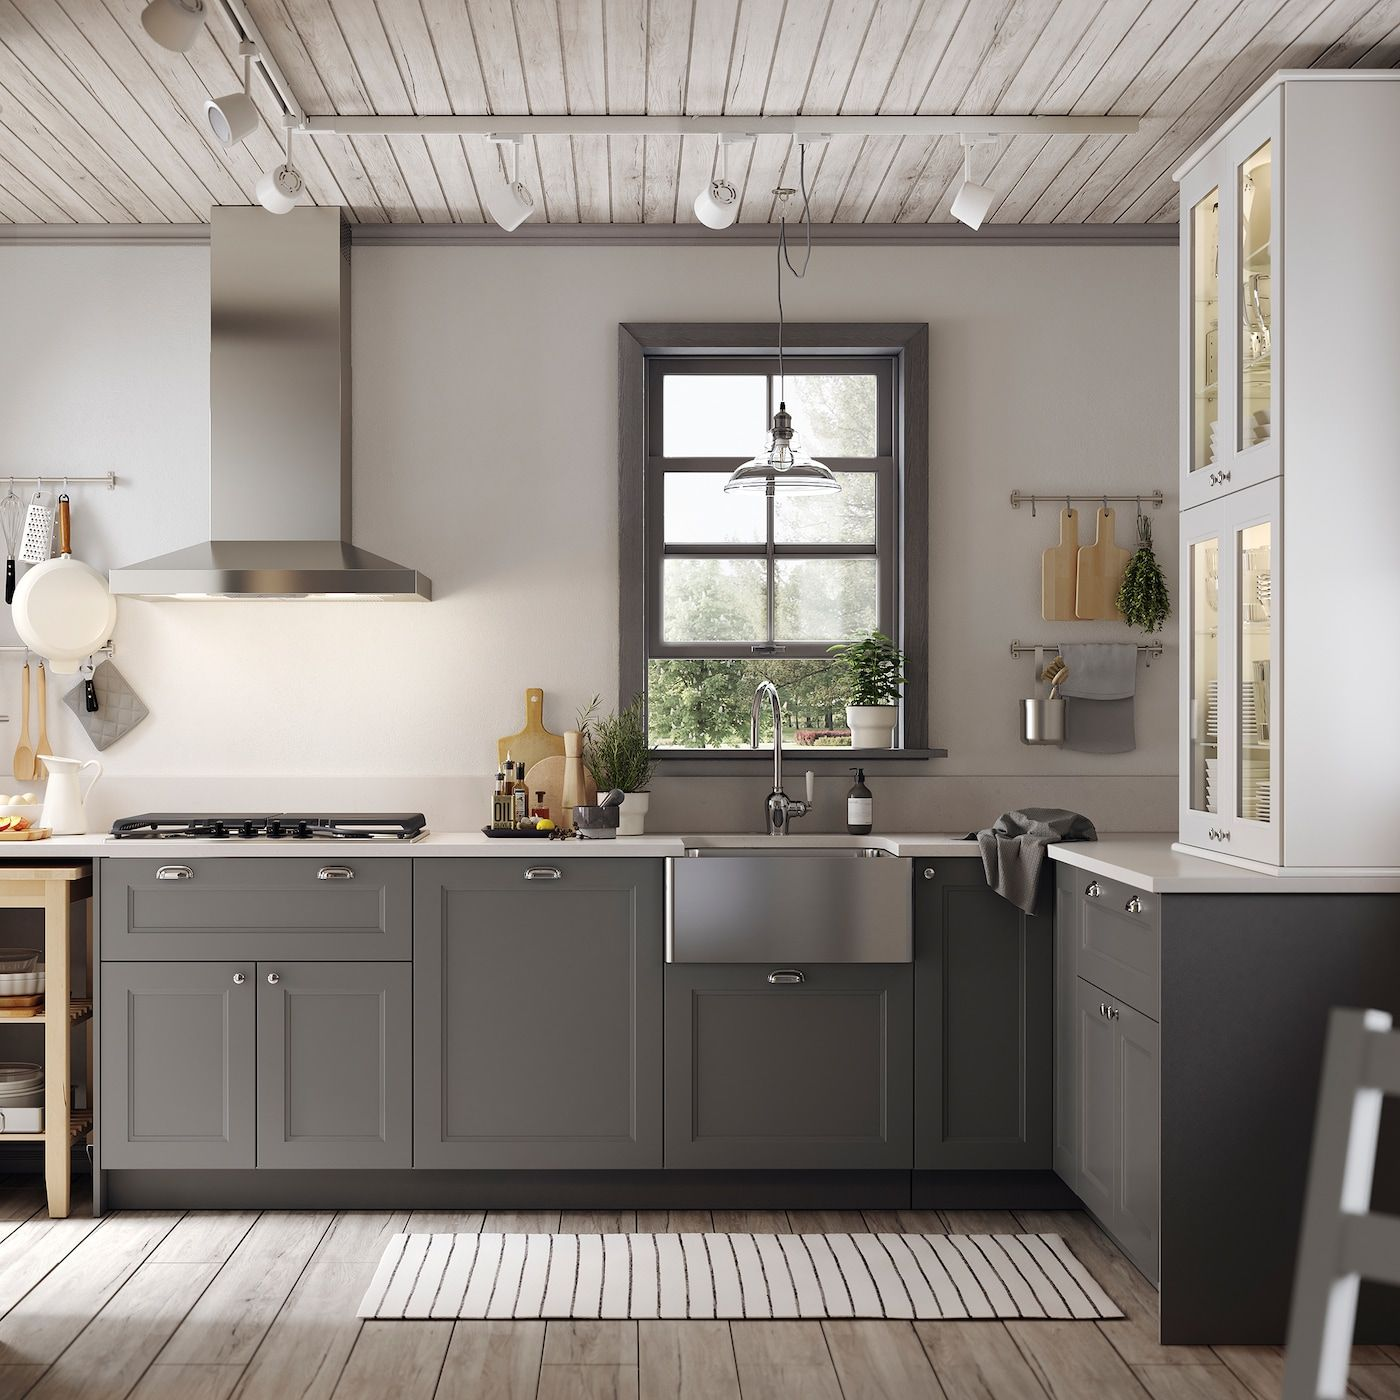 Best Kitchen Dreams That Are Refreshingly Affordable In 2020 400 x 300